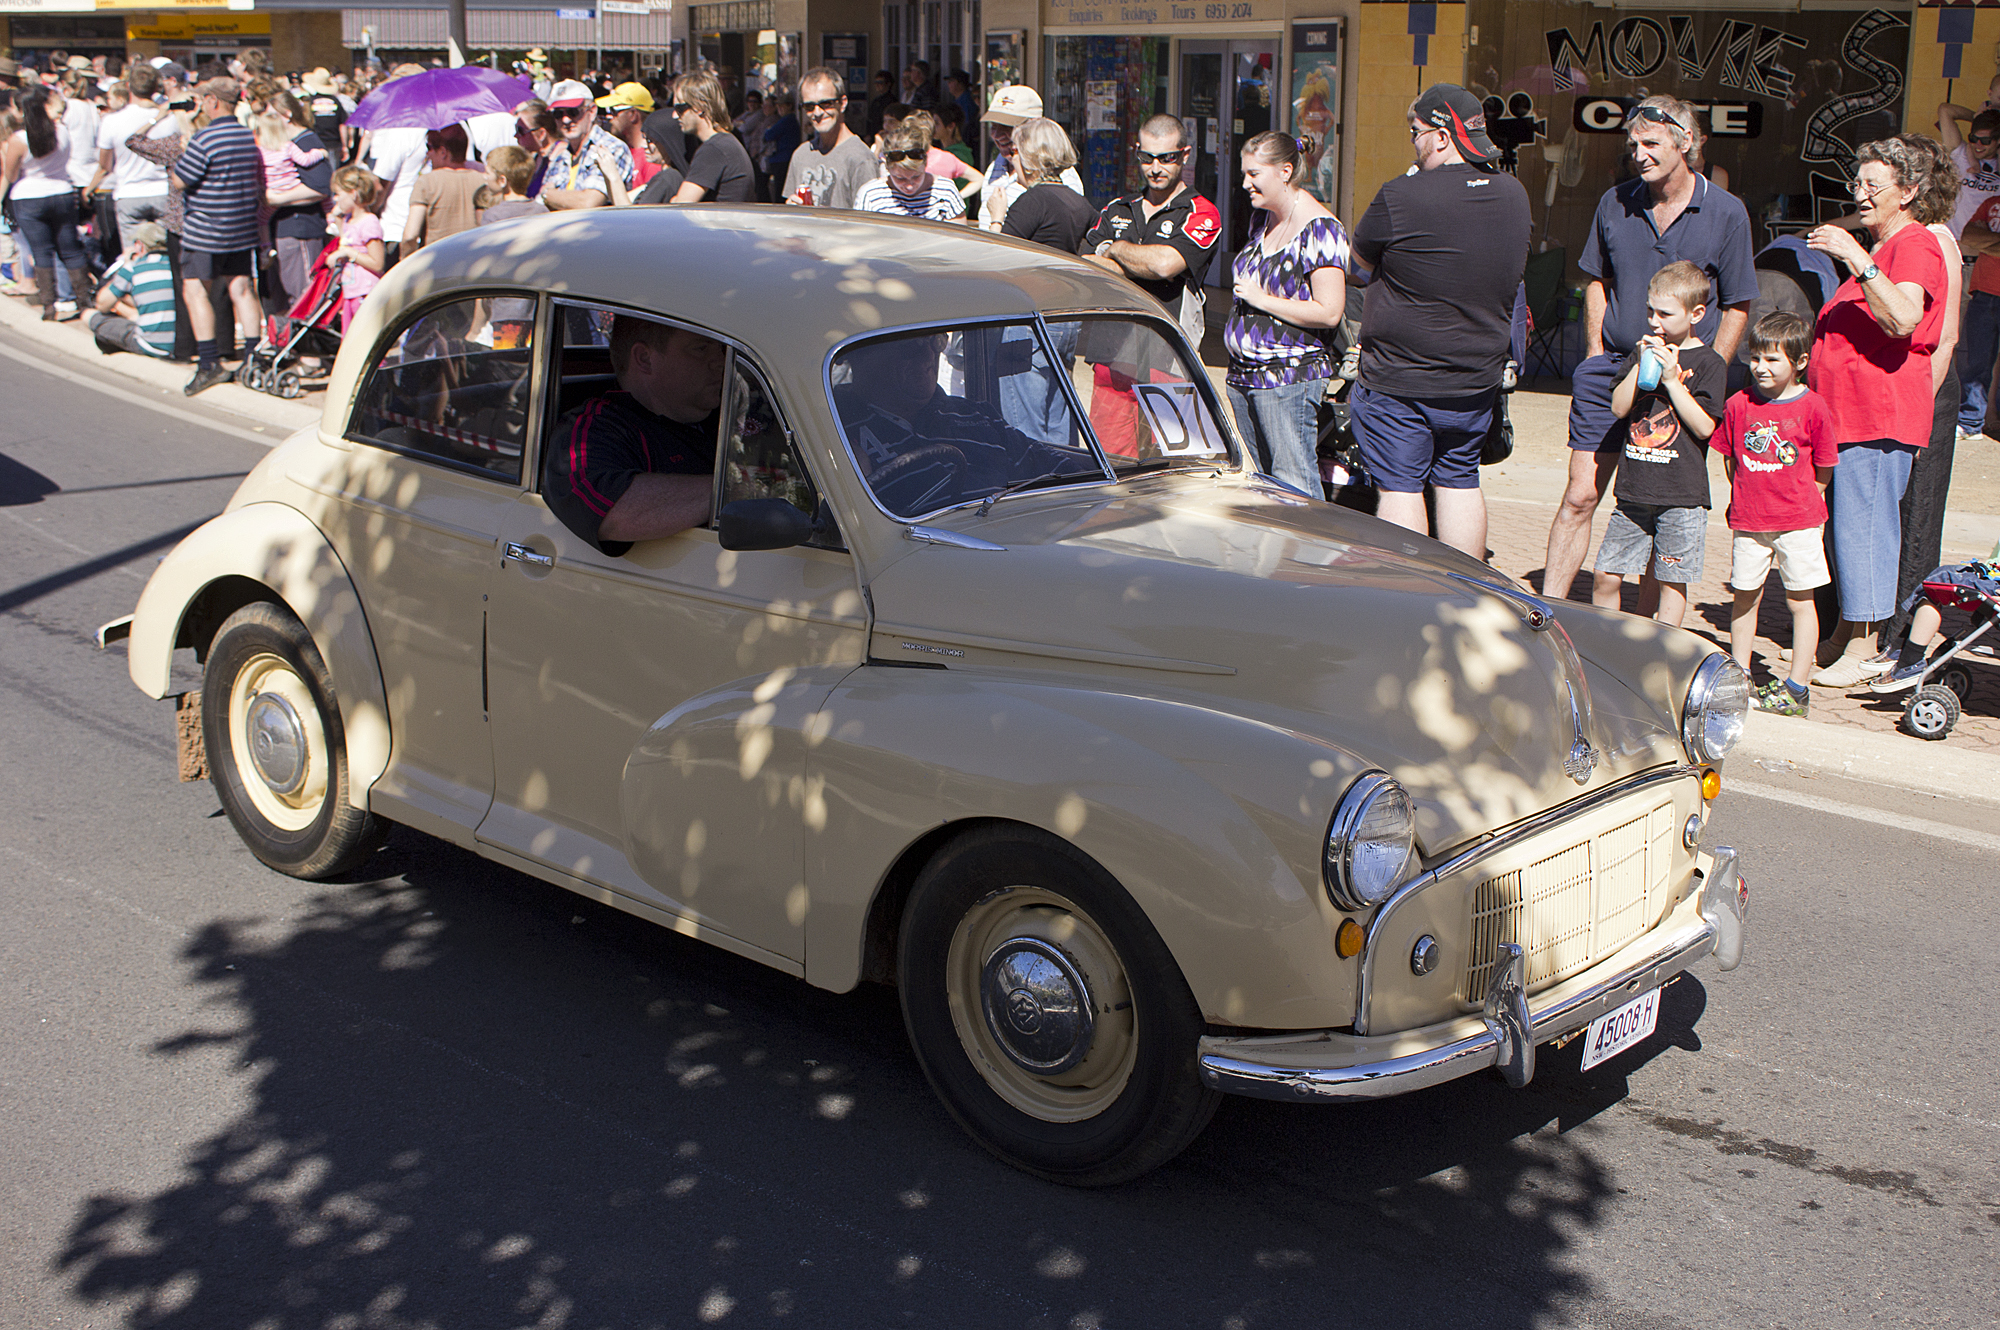 File:1952-1956 Morris Minor Series II in the SunRice Festival parade in Pine